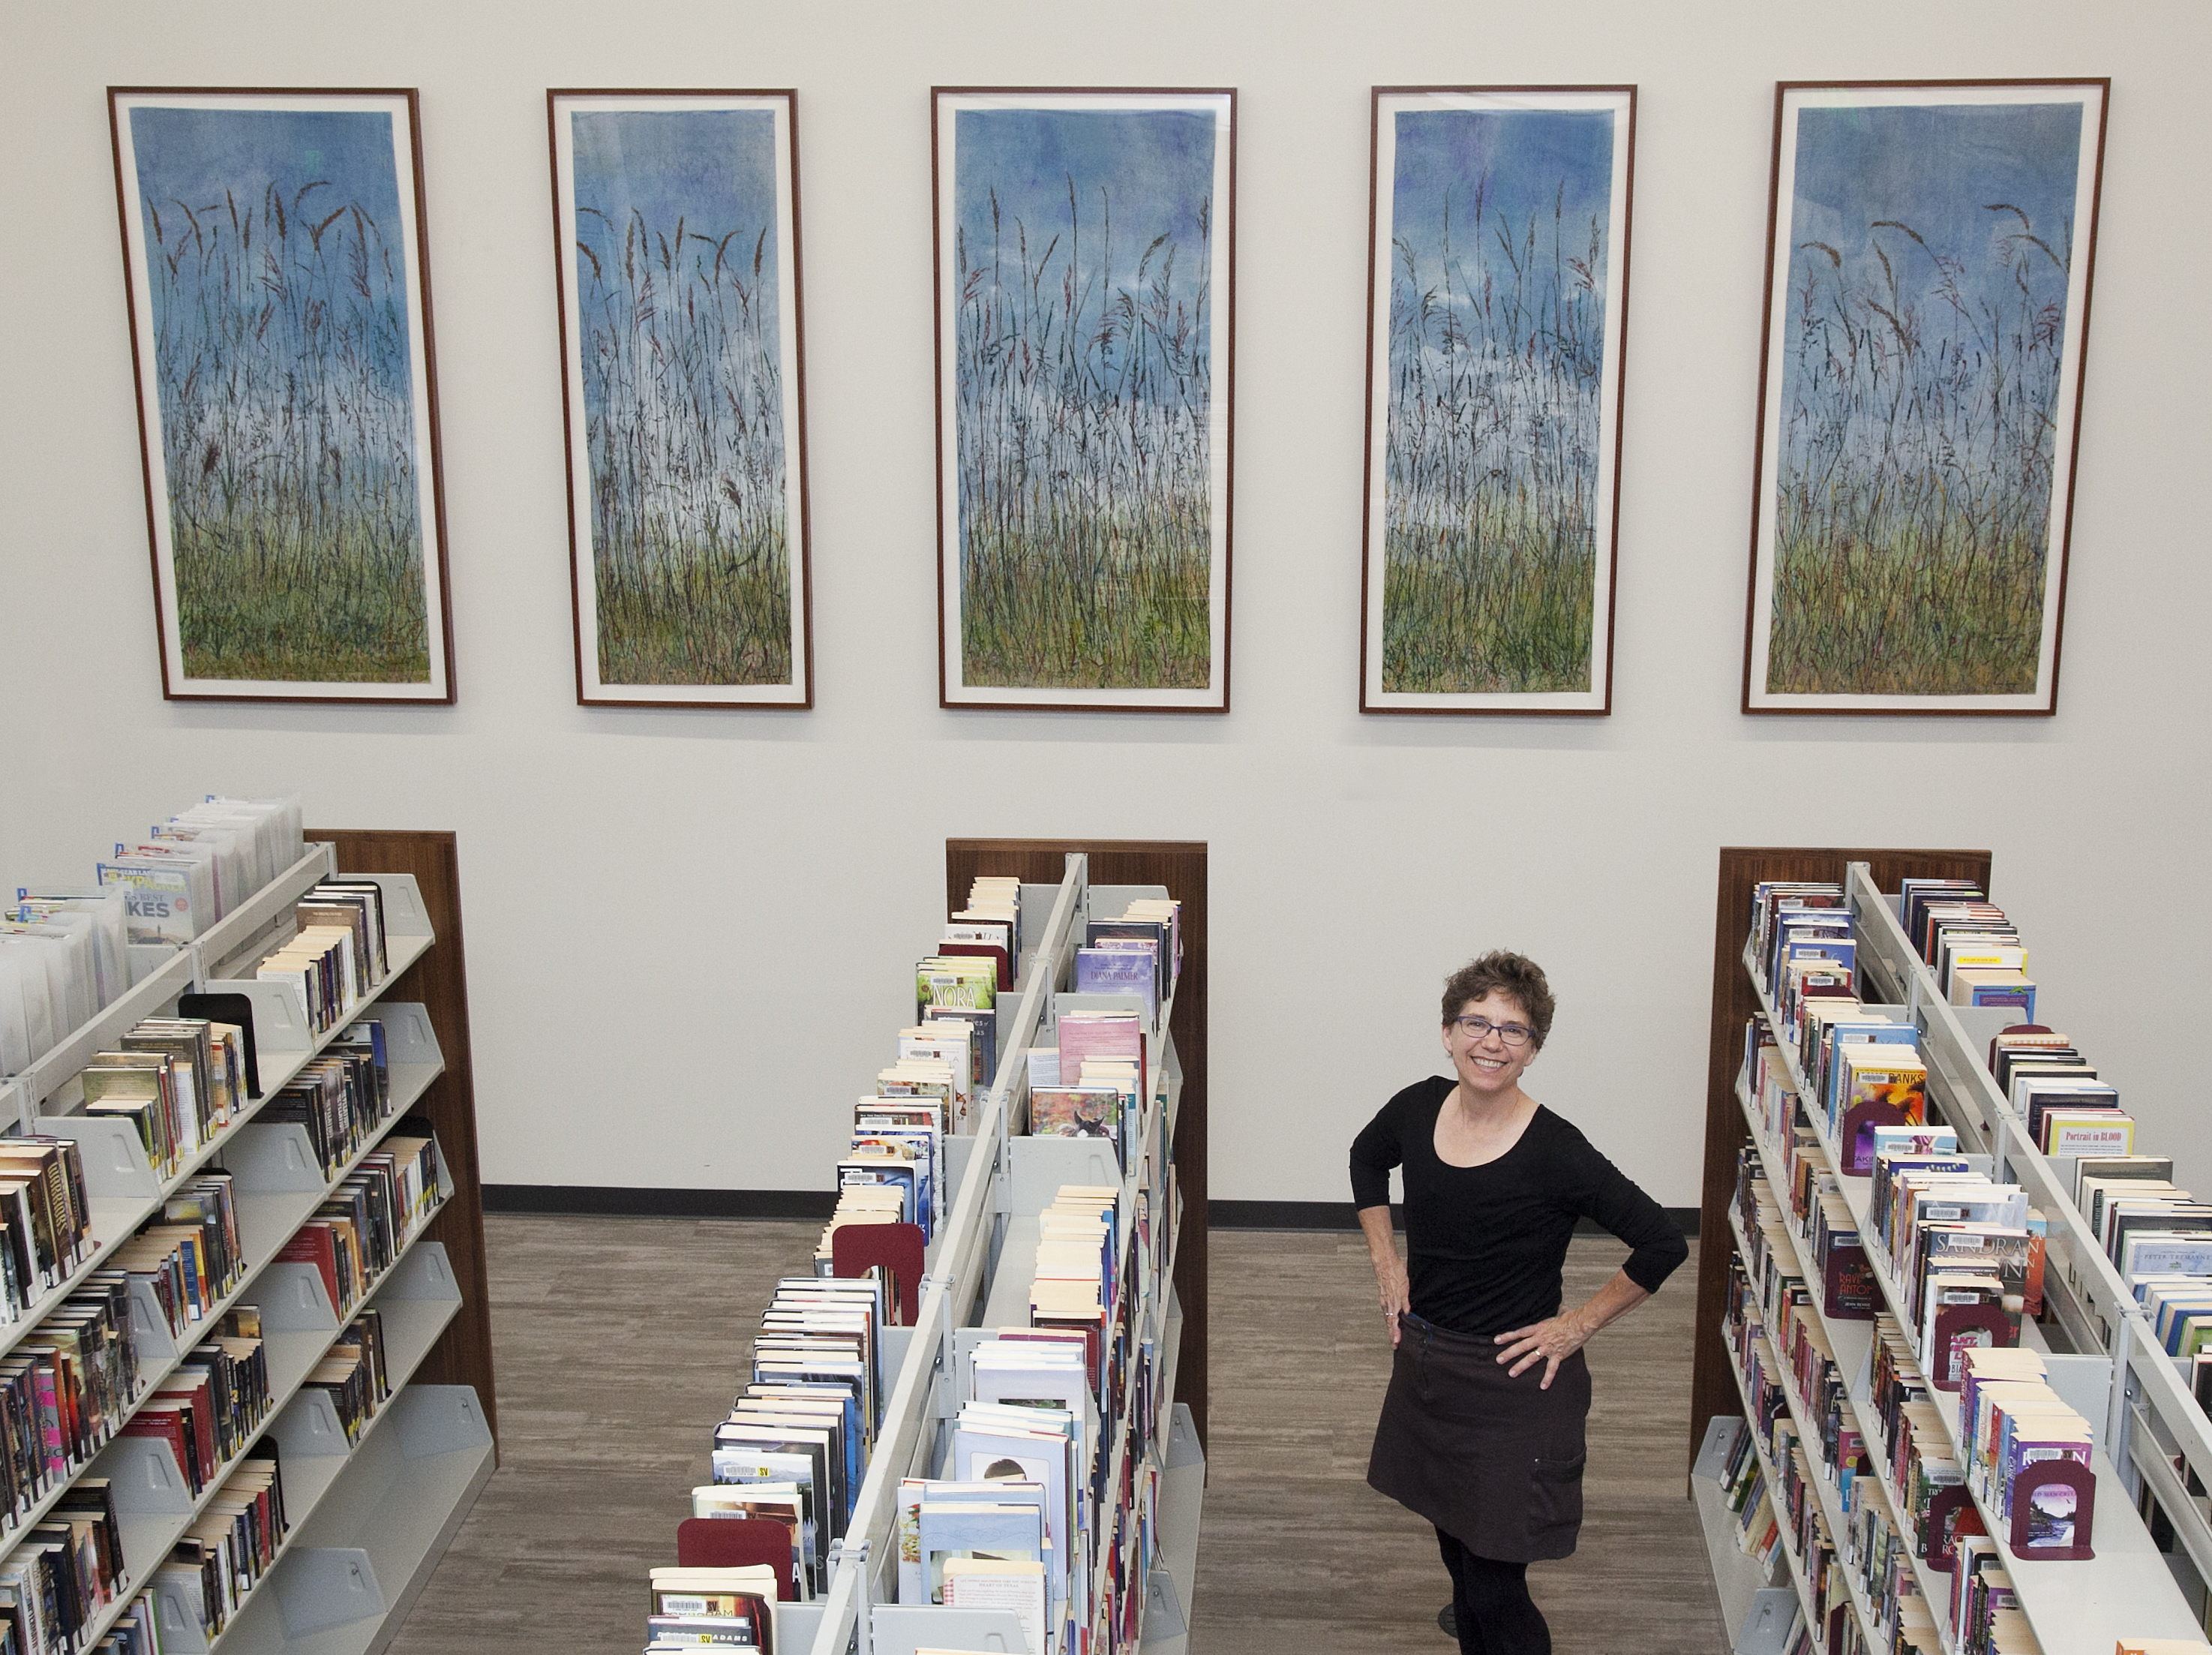 Snouffer with her installation, titled *Grass Lake* (botanical printmaking on pigment-infused tissue paper, 2017) at the Shoreview Branch Library in Shoreview, MN. It is her largest piece yet, and is named for a nearby prairie